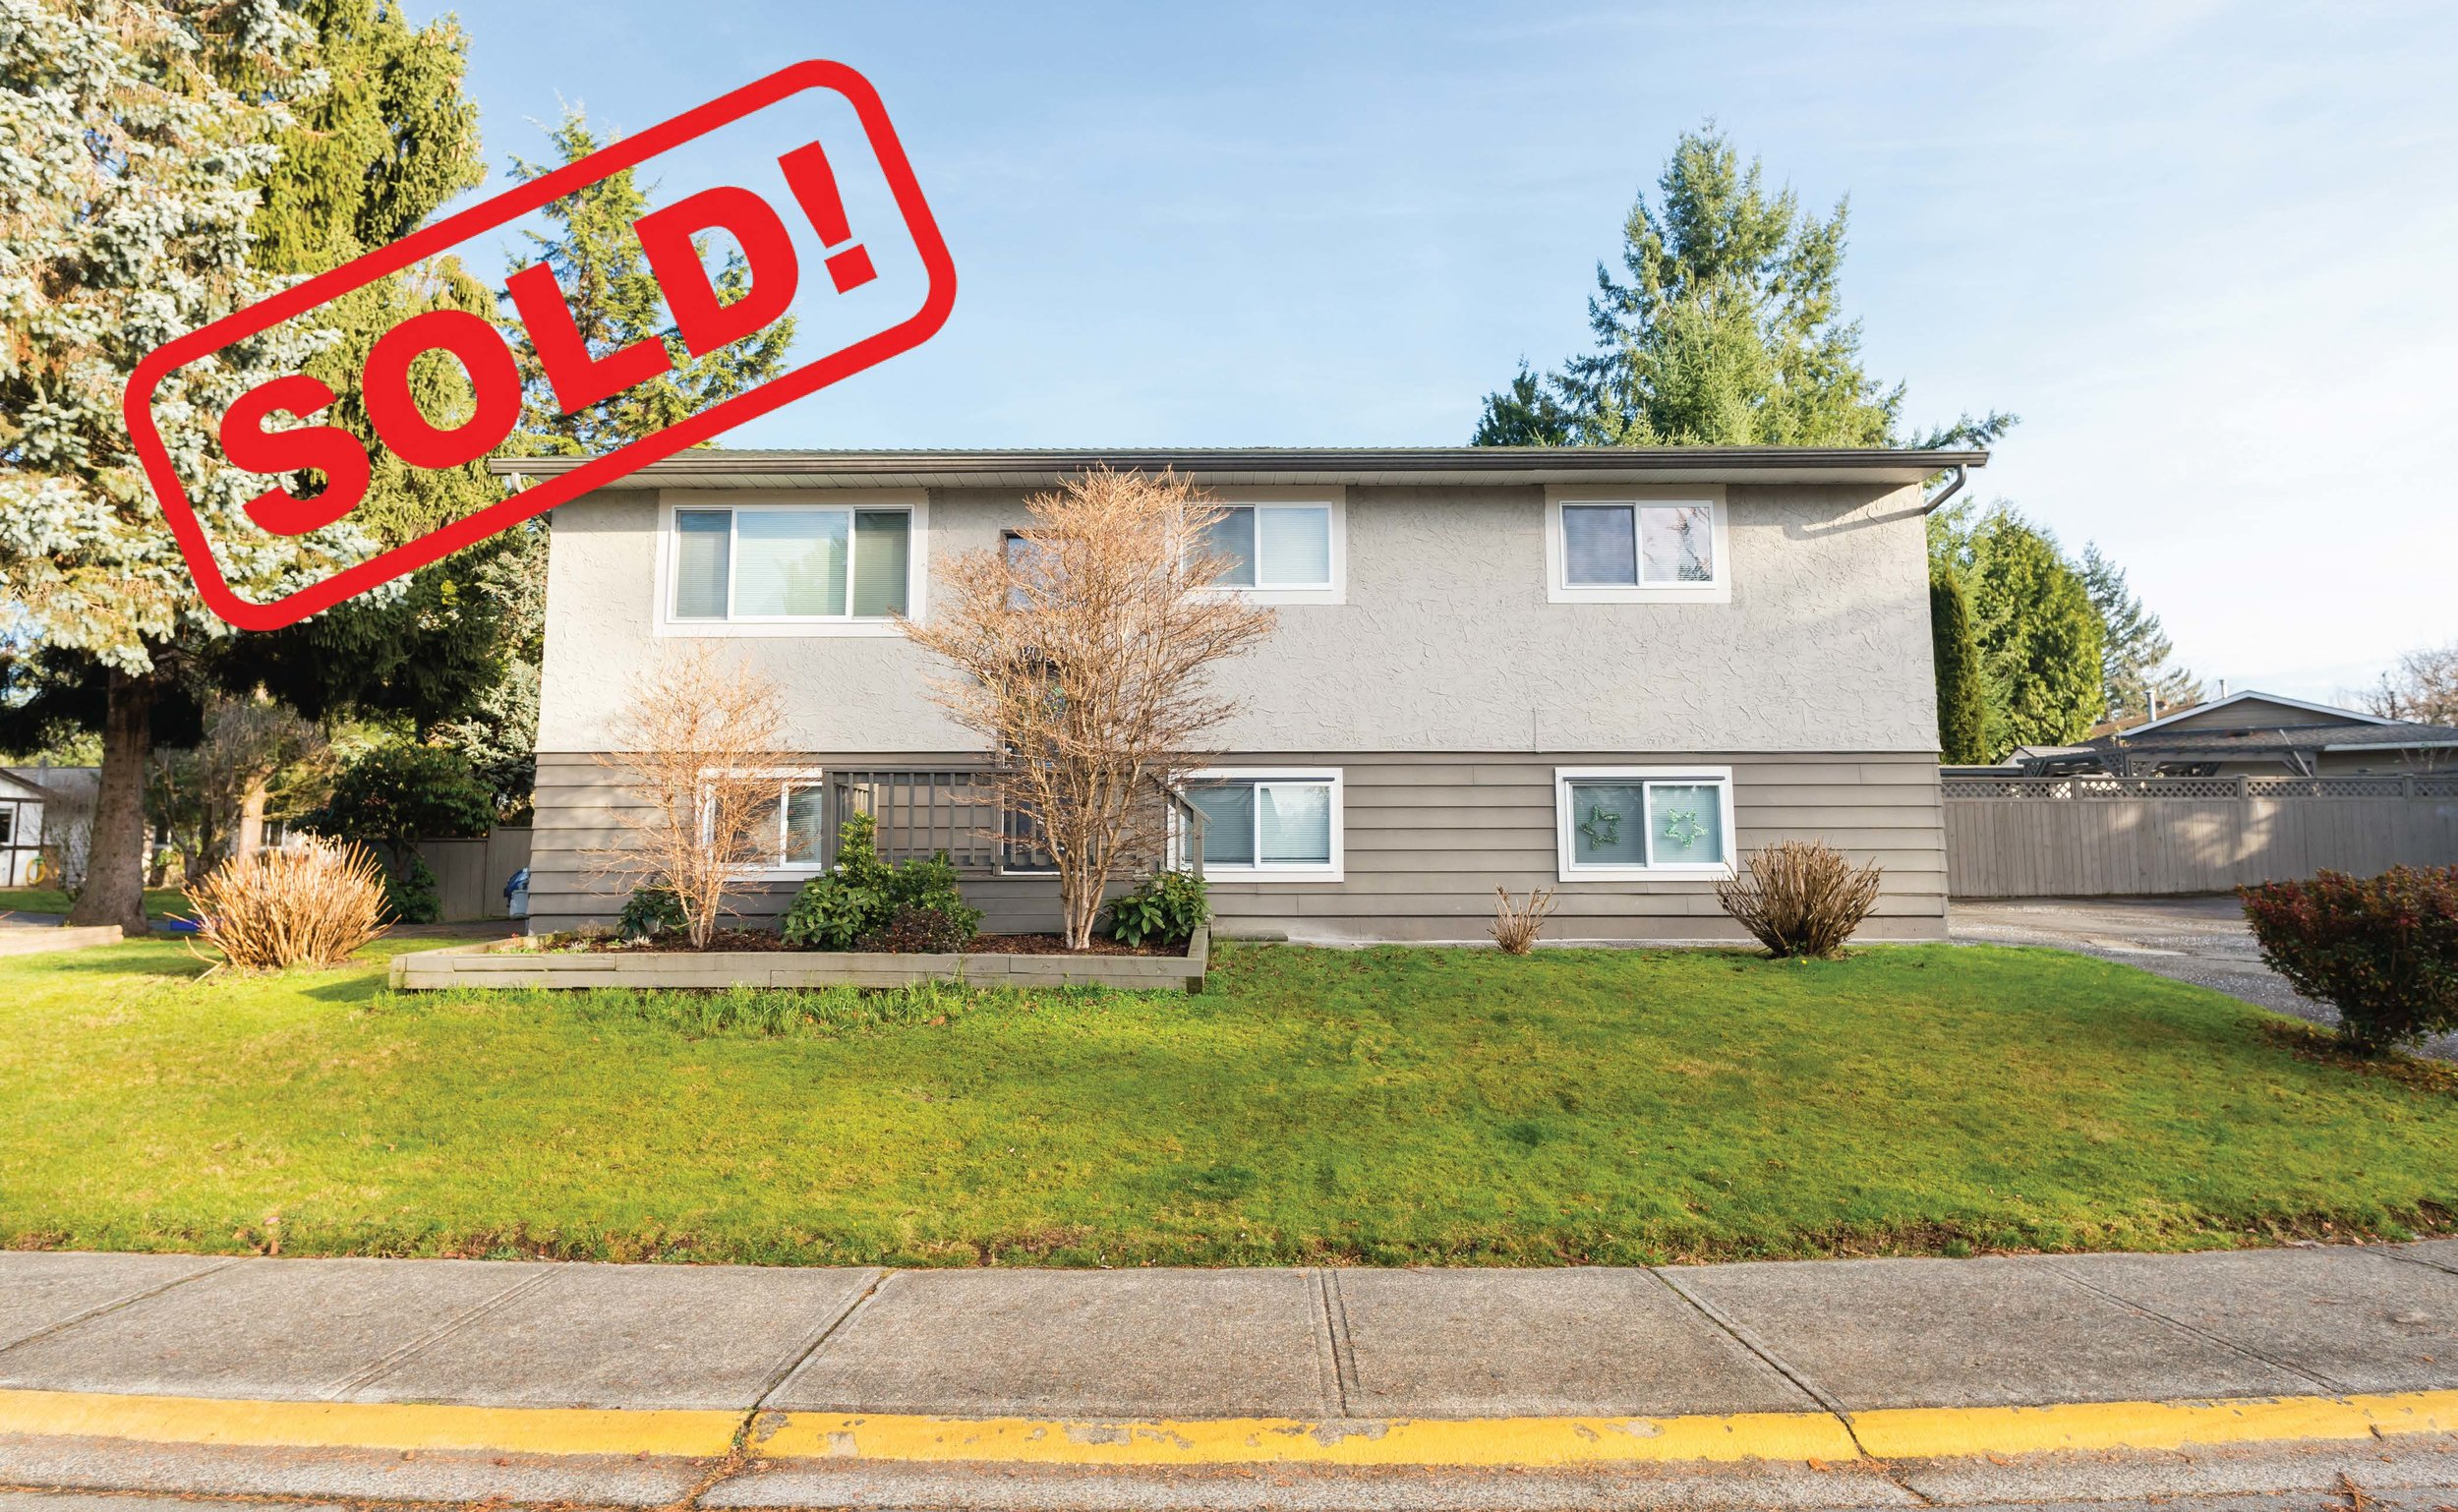 20511 50A Avenue   SOLD FOR: $840,000  6 Bed | 2 Bath | 2,404 SF